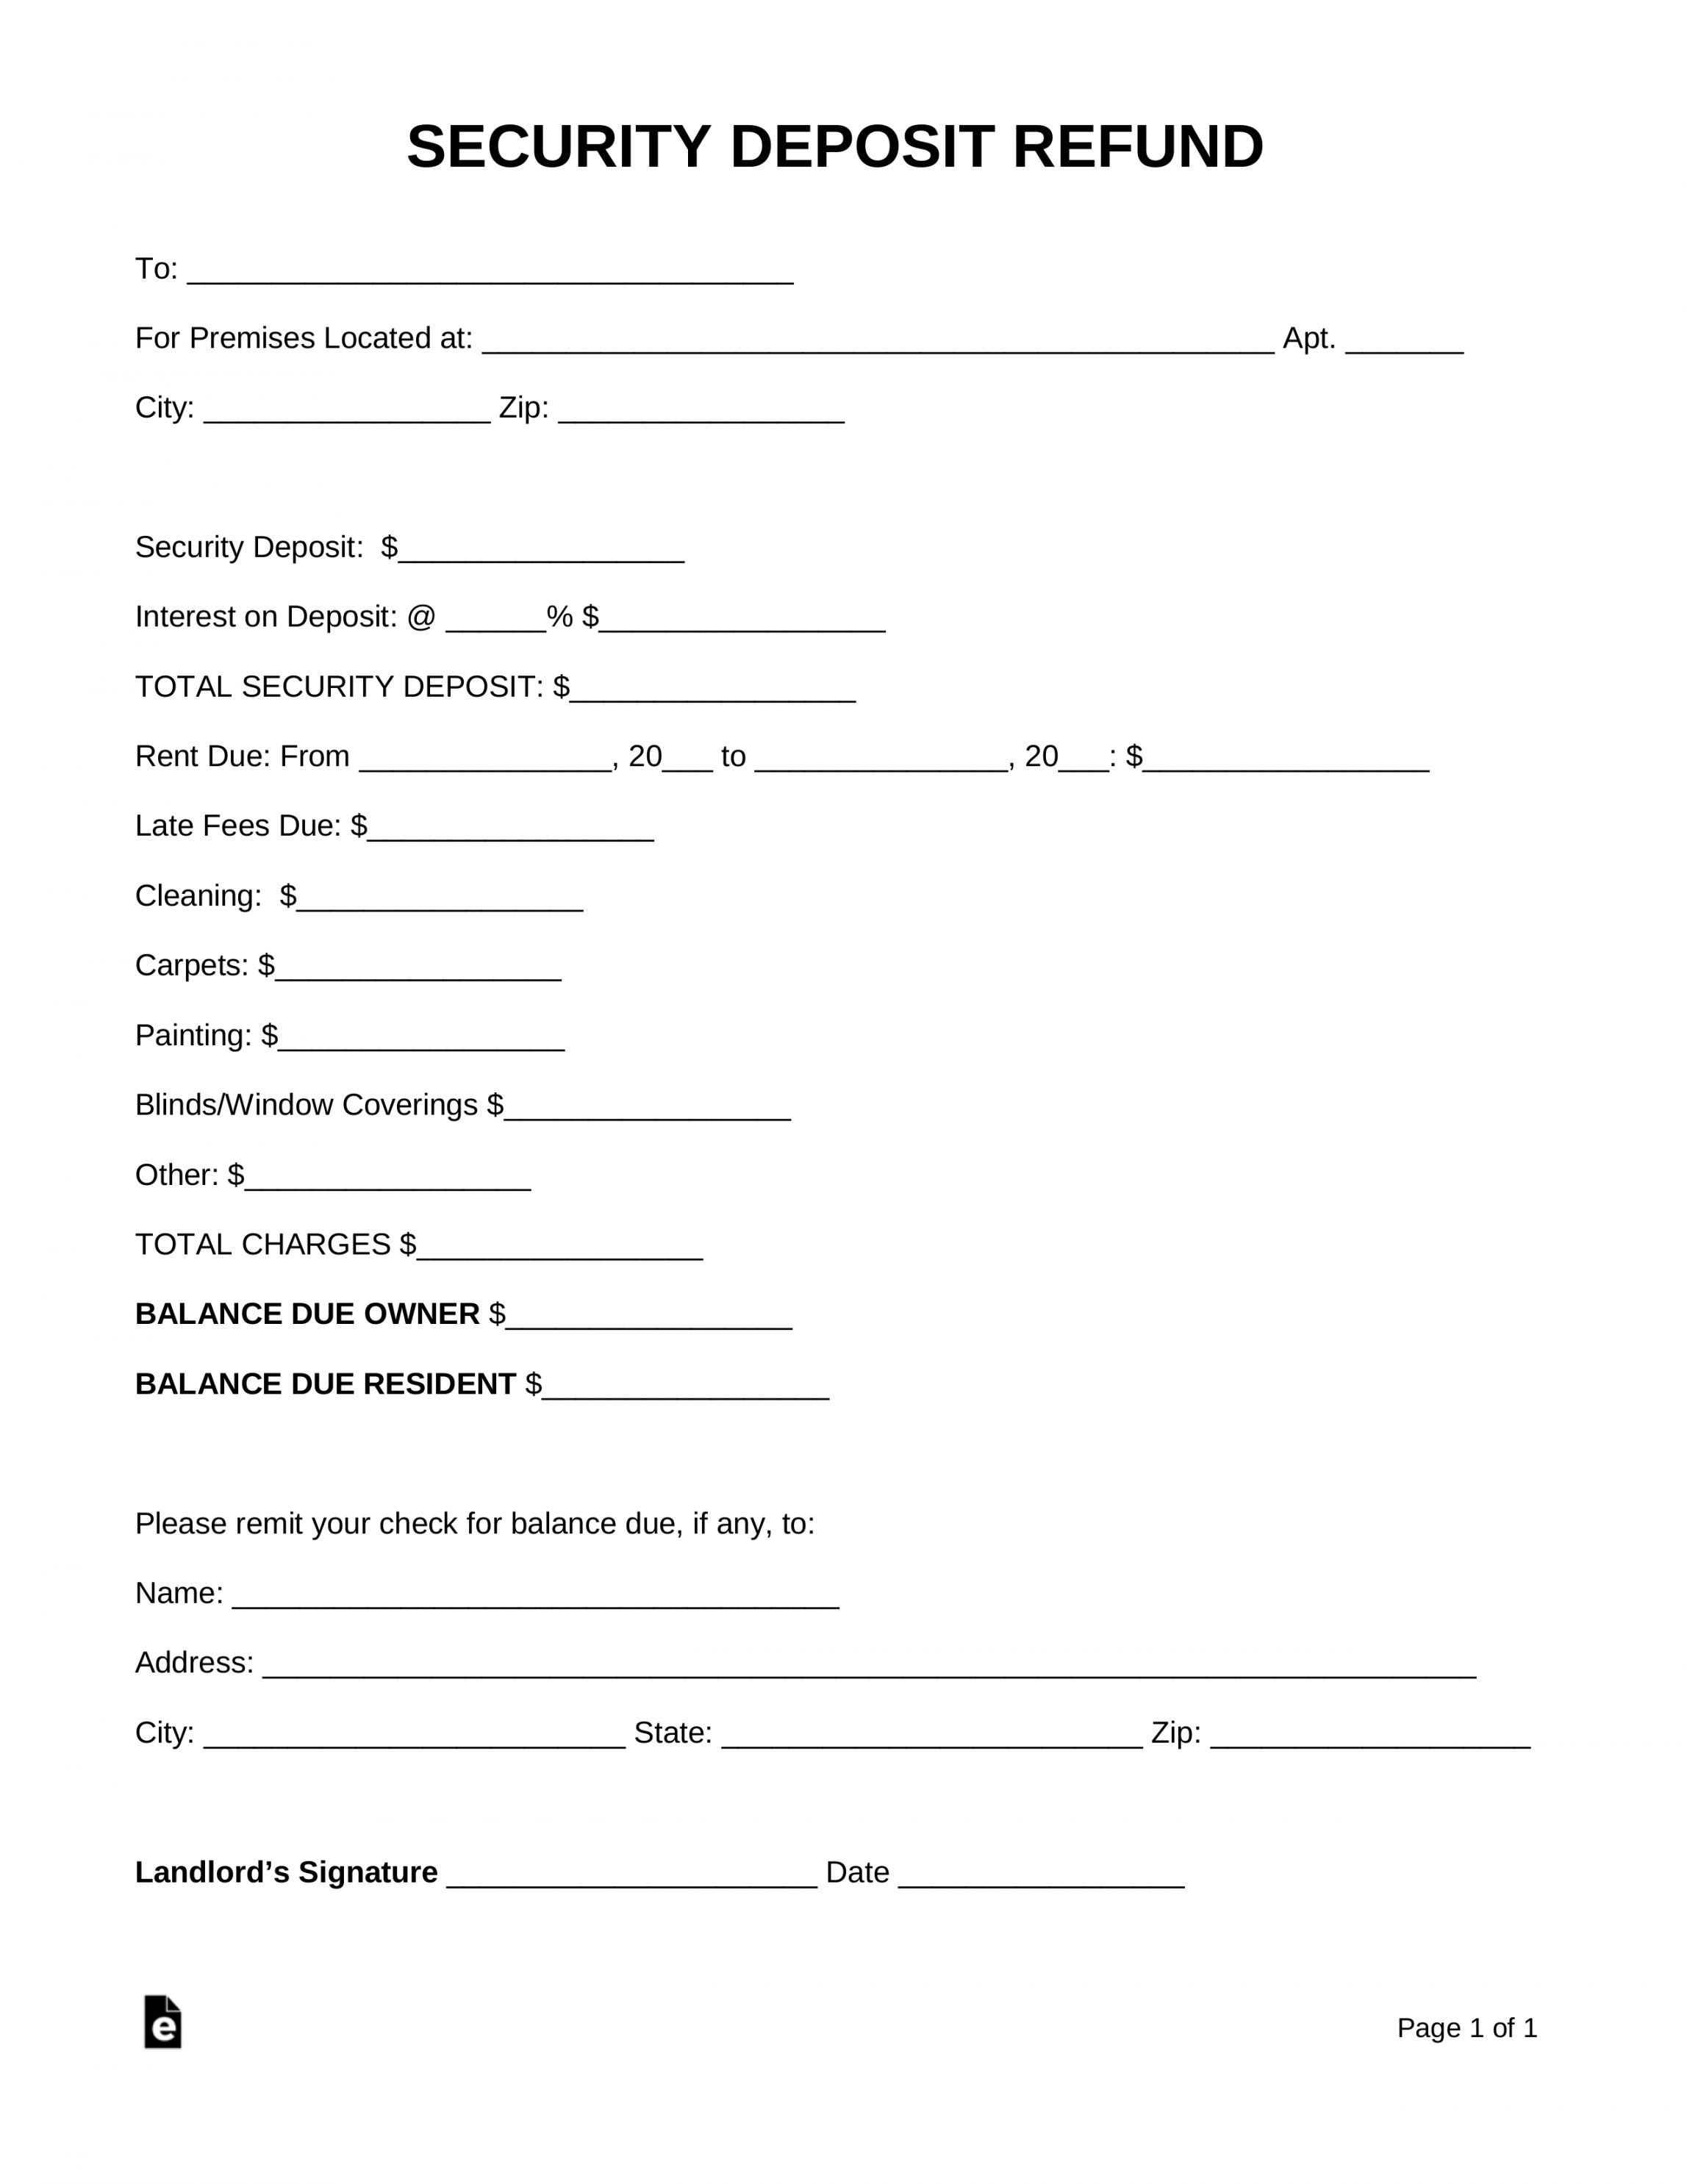 Get Our Sample Of Request For Return Of Security Deposit Form Receipt Template Being A Landlord Lettering